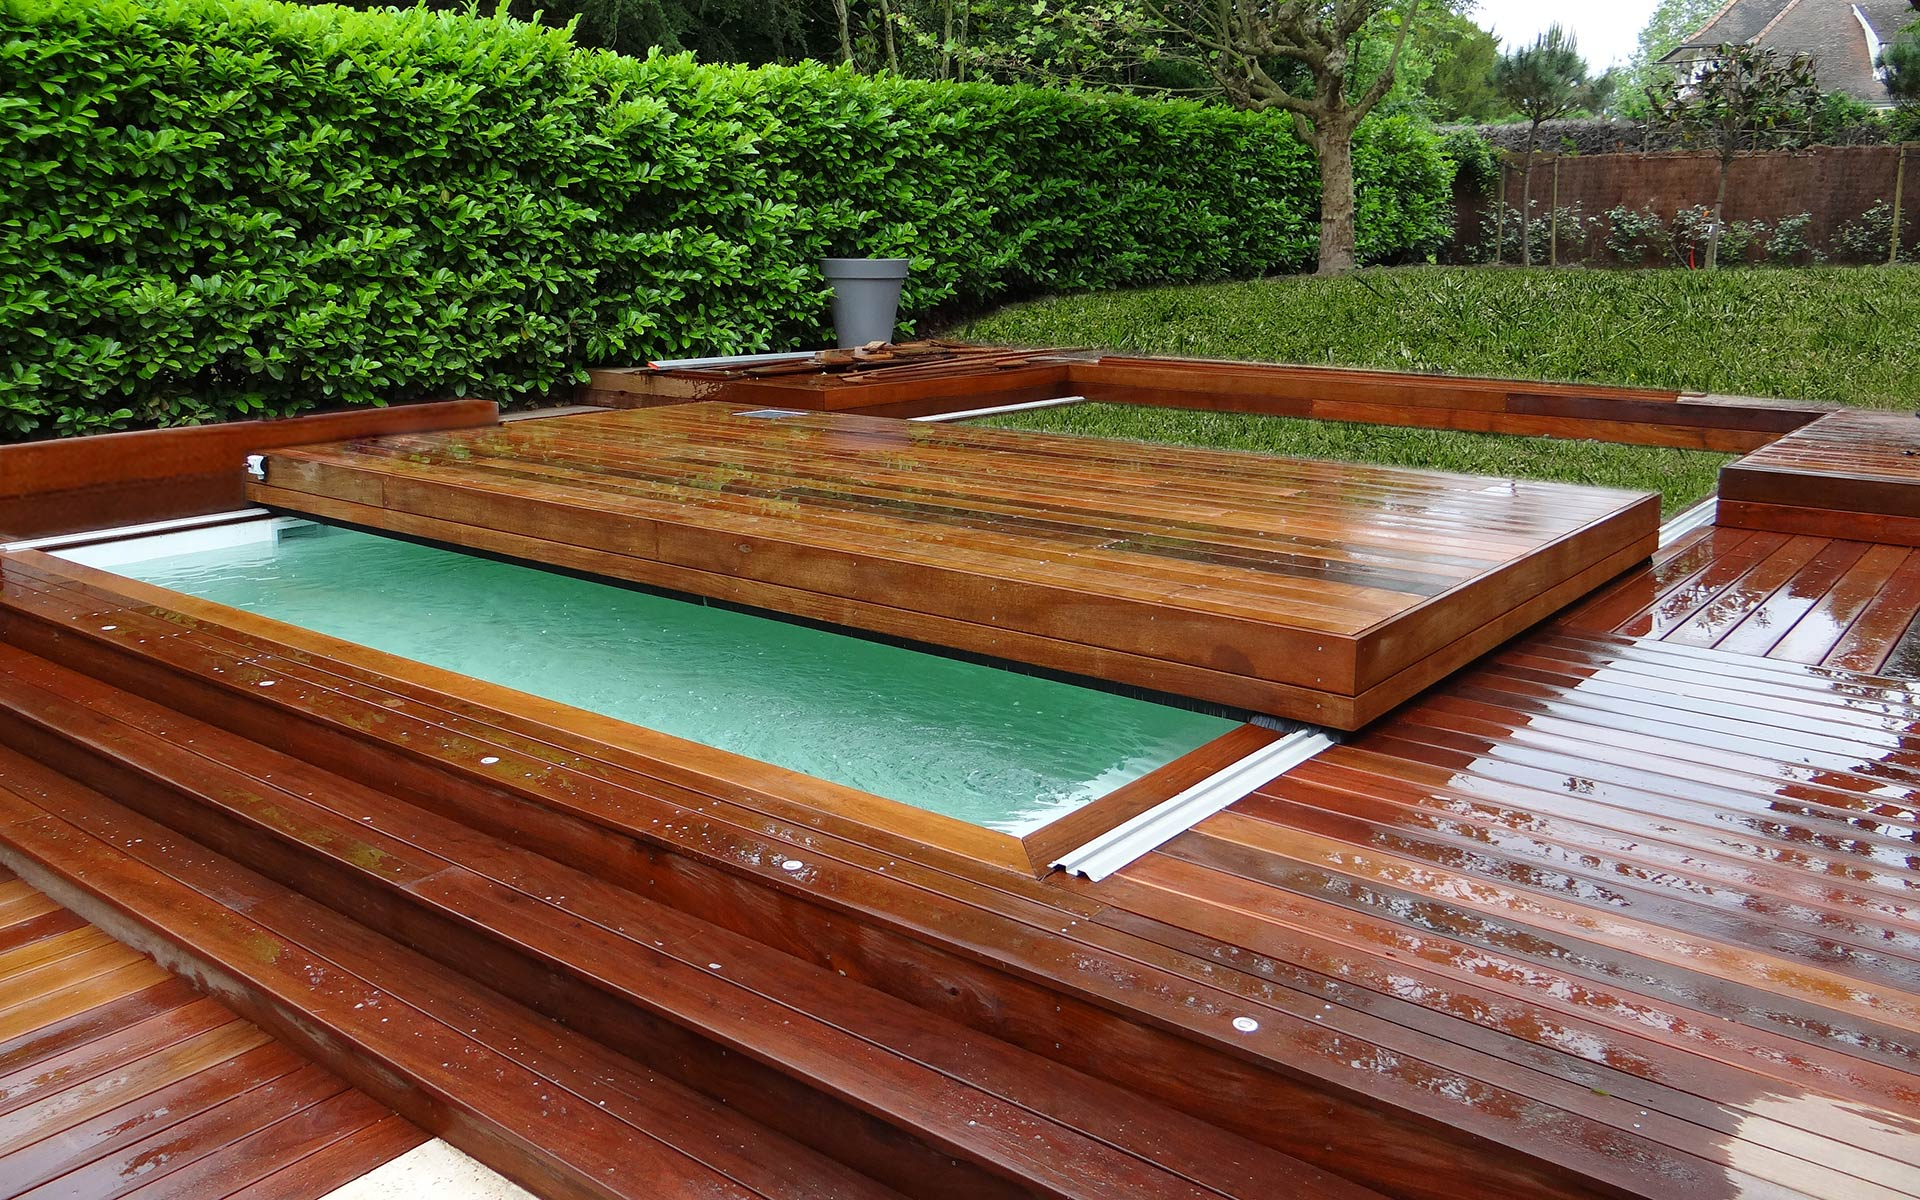 Terrasse mobile pour piscine hidden pool fond mobile for Terrasse pour piscine